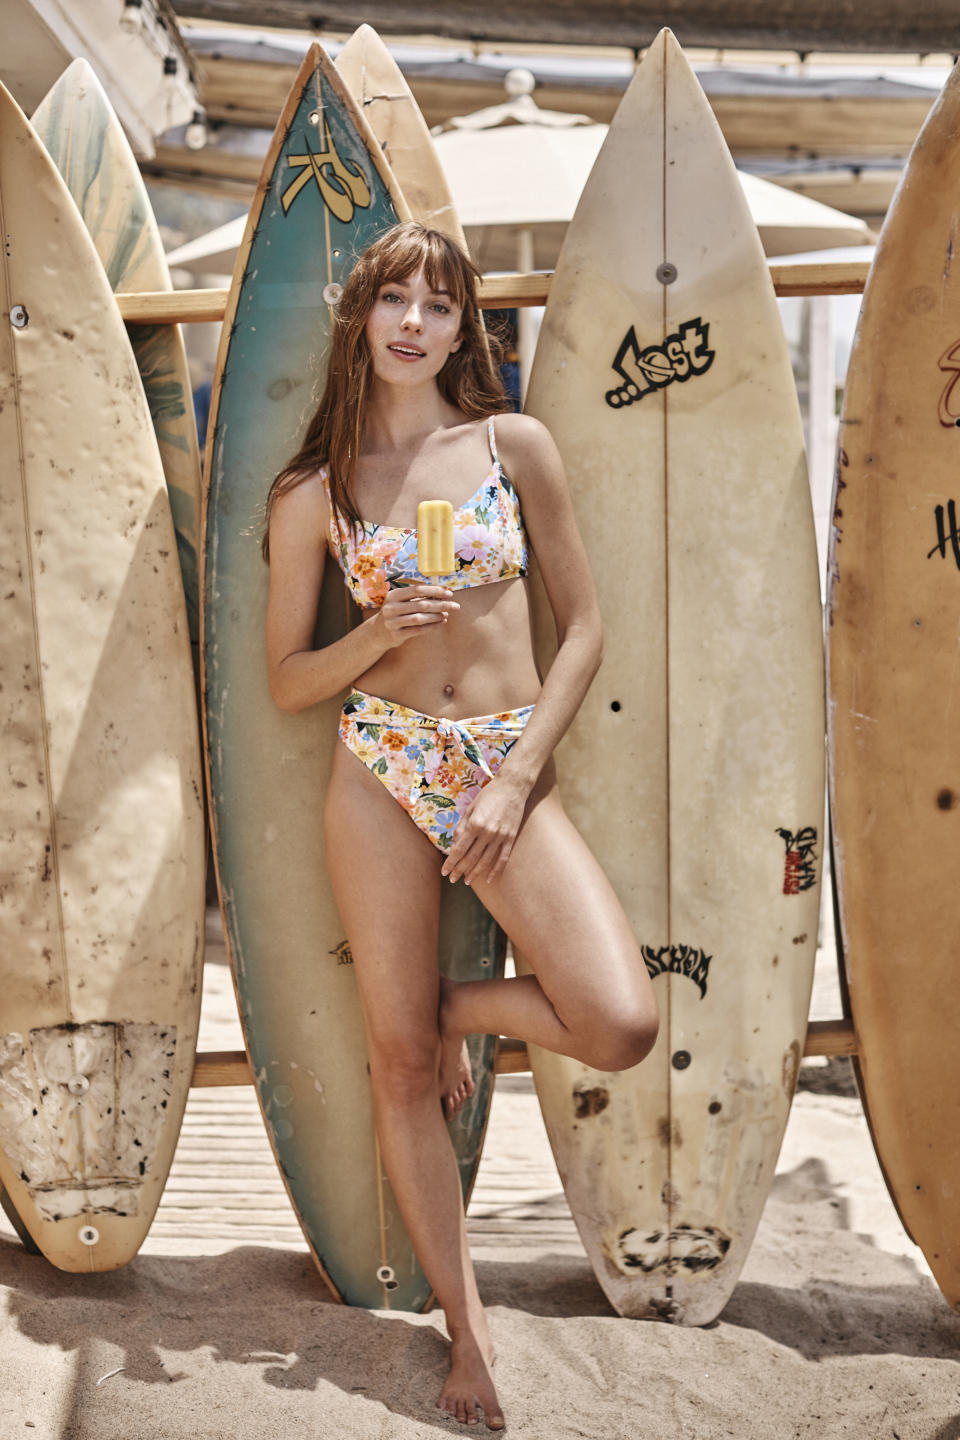 The Wanderlust Bikini Top and Tie Belt High Leg Mid Rise Bottom. Image courtesy of Rifle Paper Co.